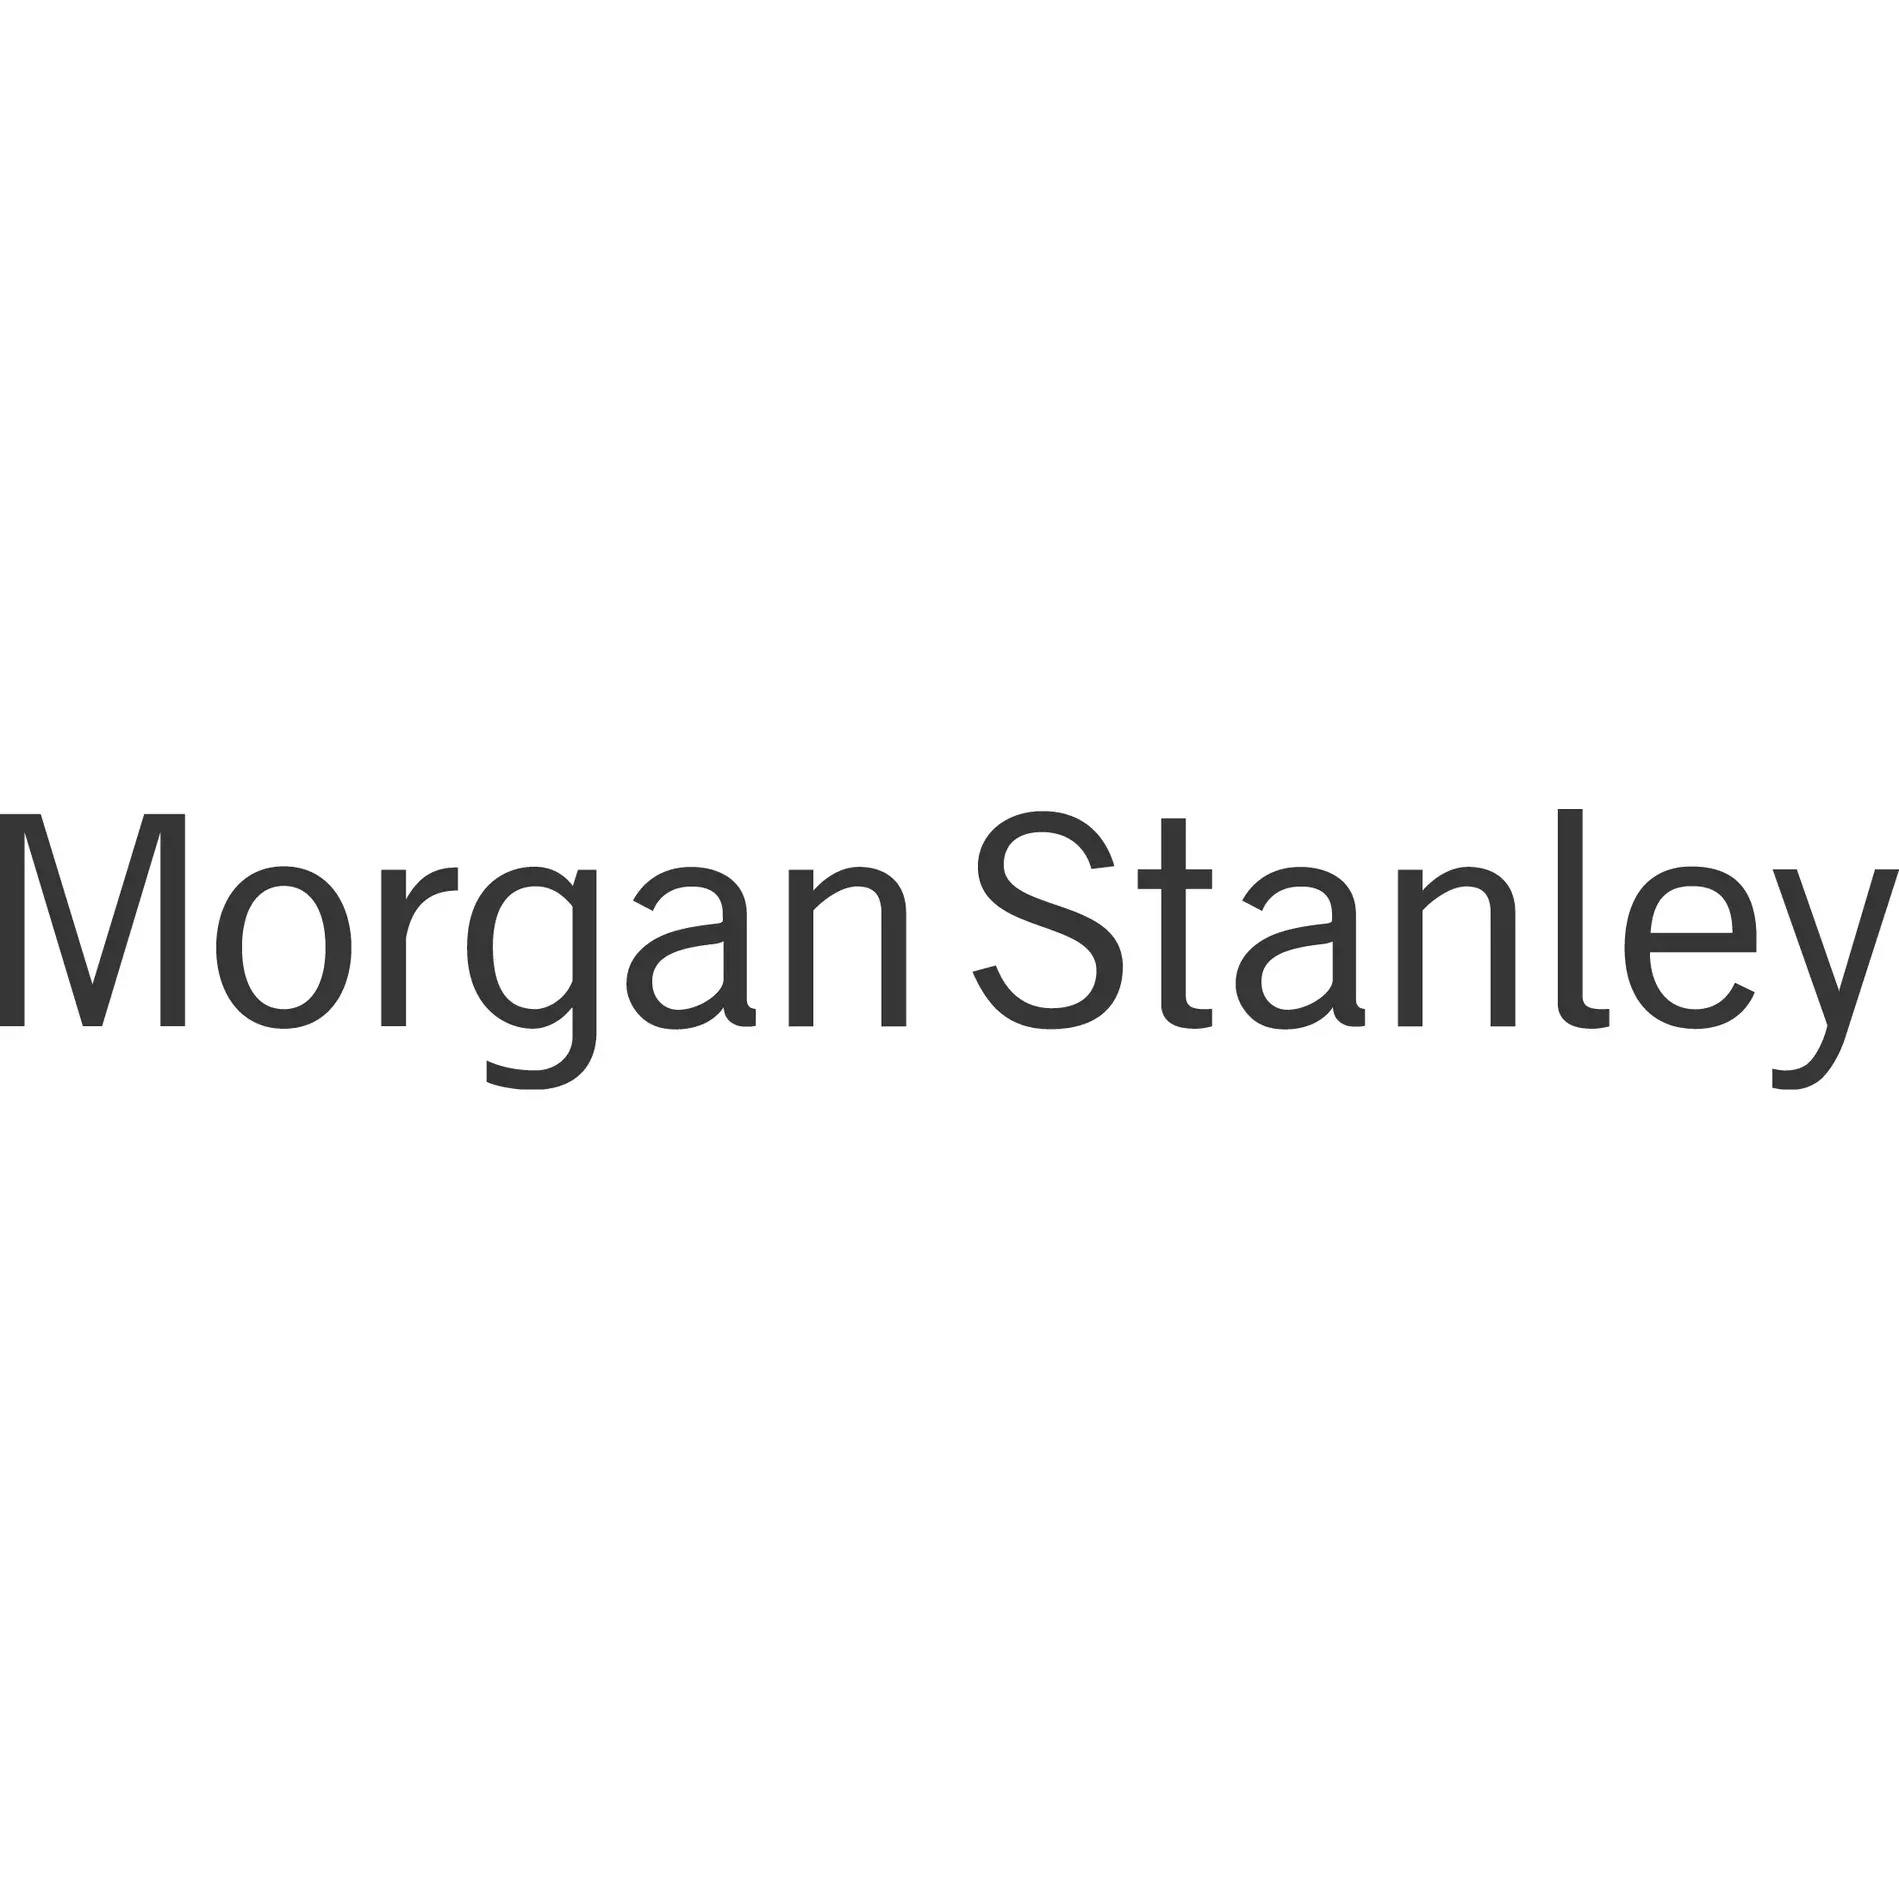 Chandler-Brennan Group - Morgan Stanley